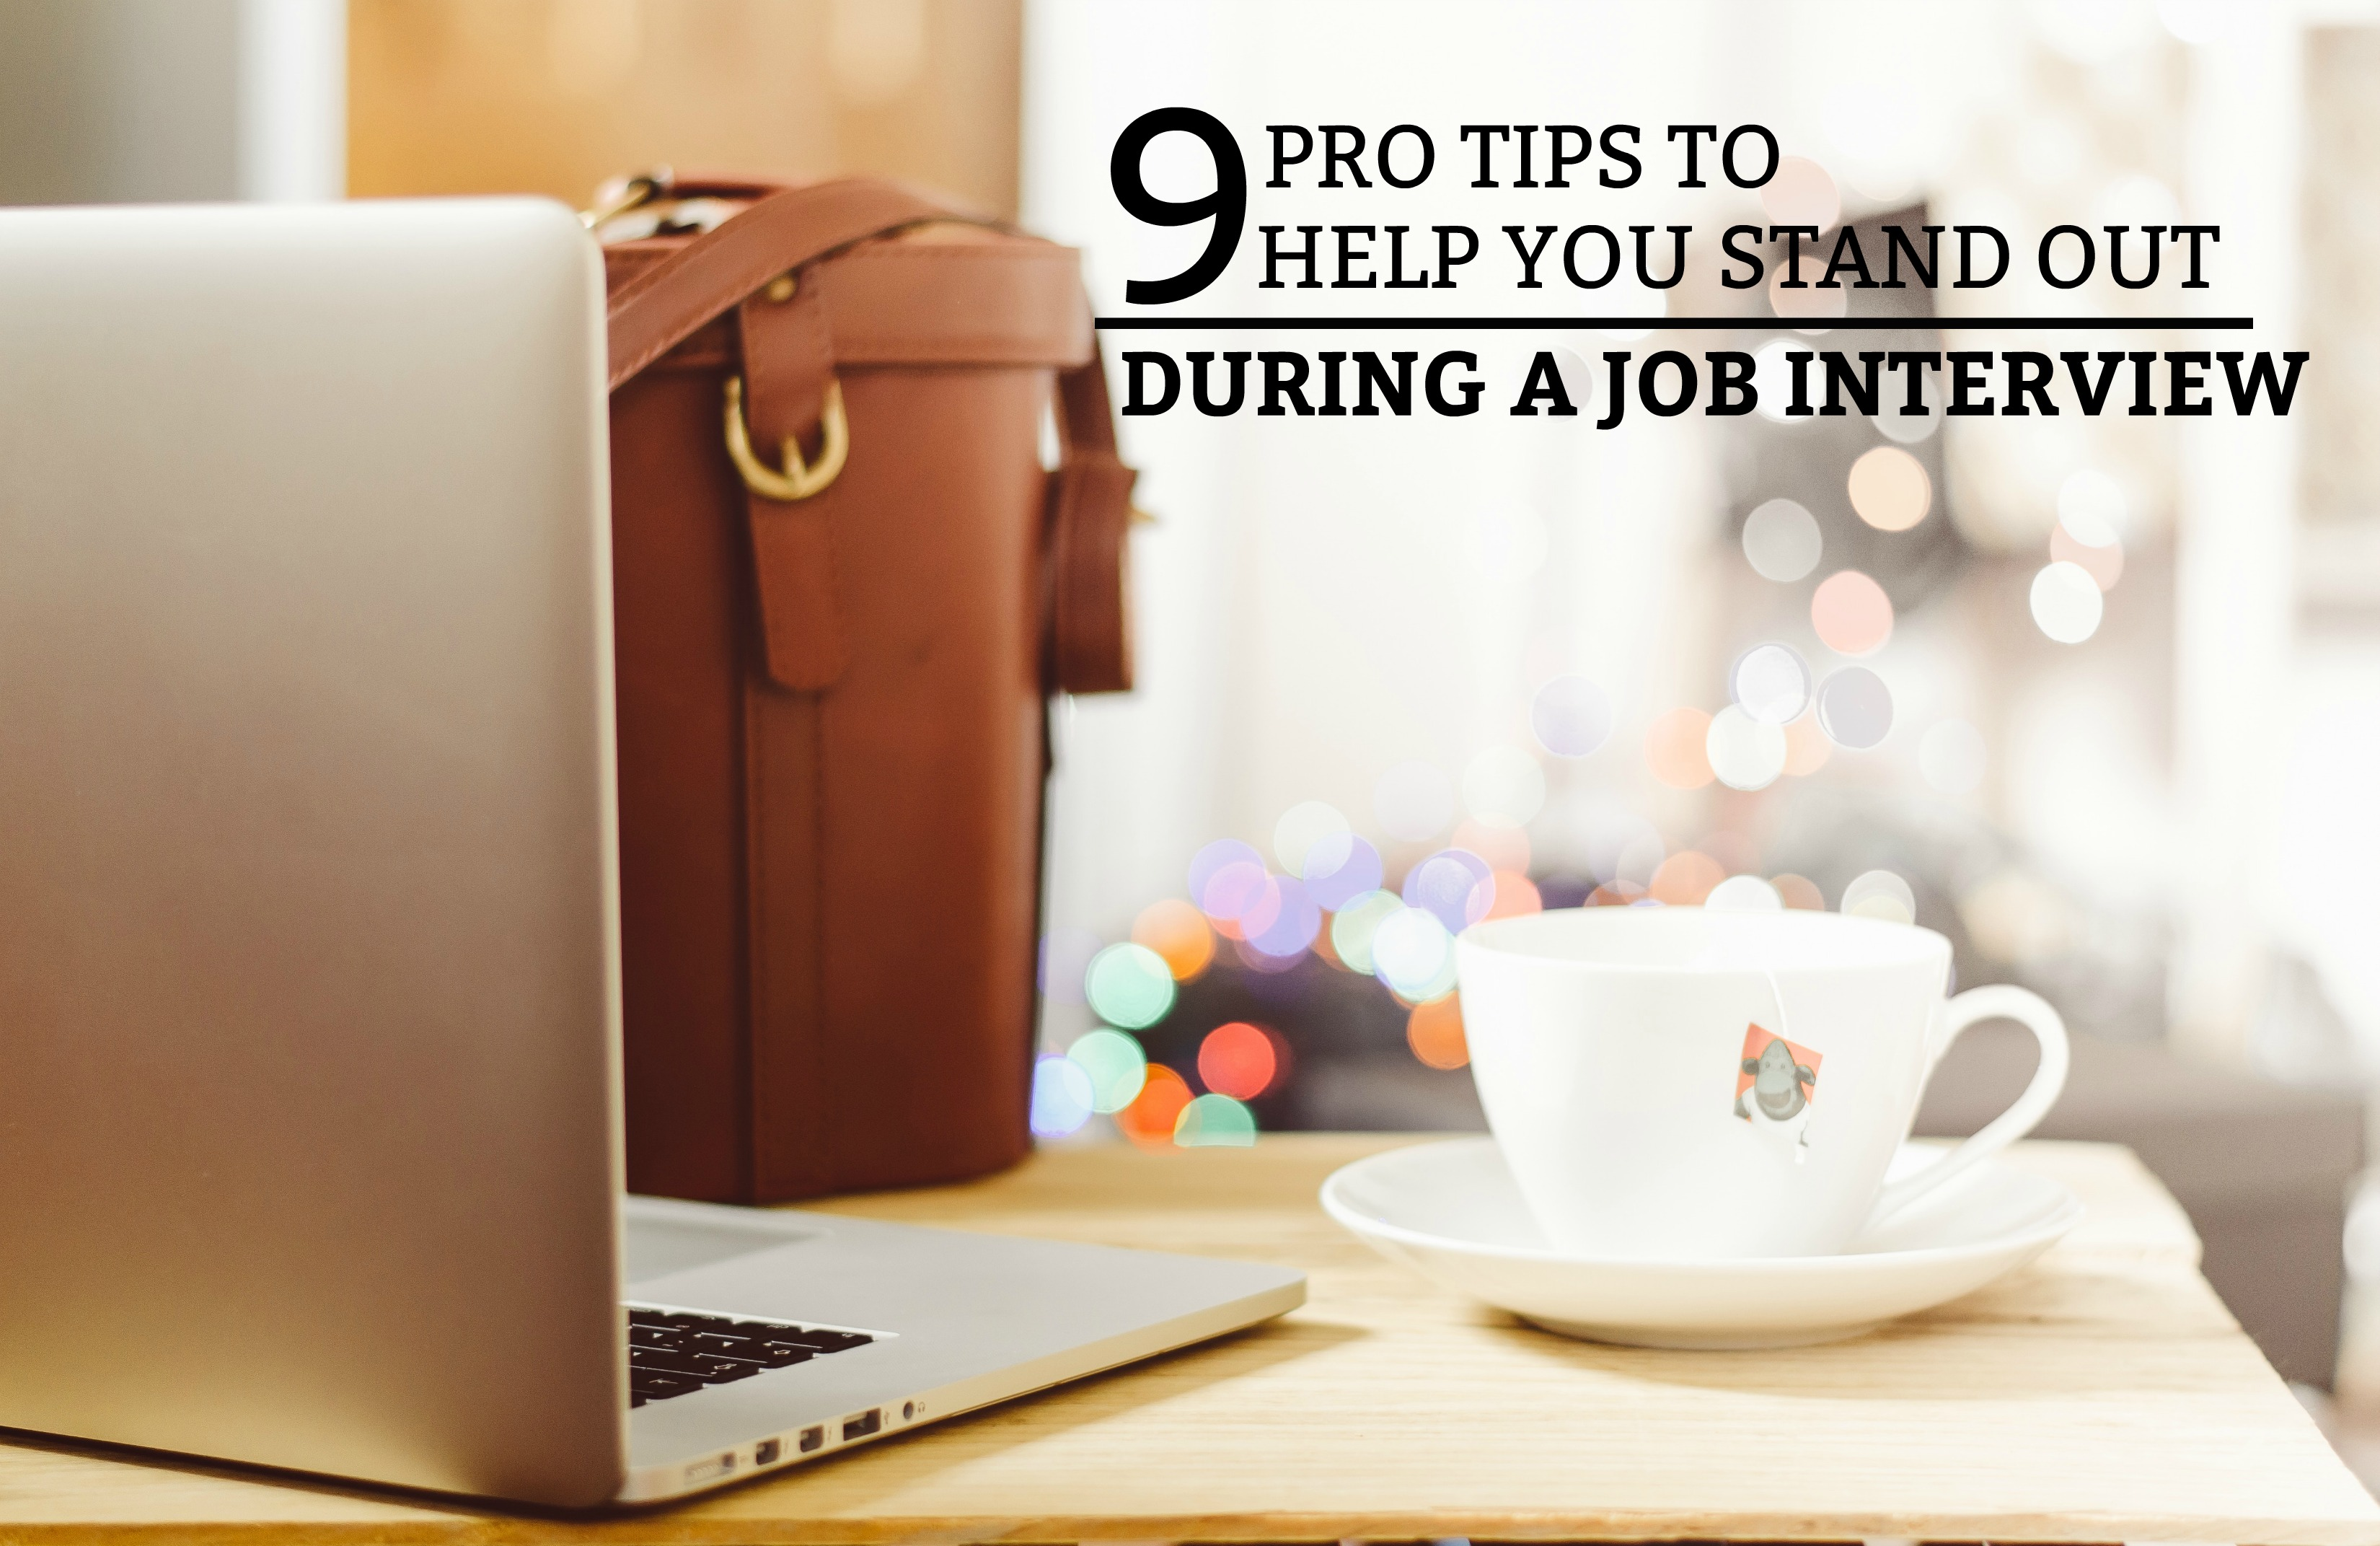 9 Pro Tips To Help You Stand Out During Job Interviews - A practical guide on how to be prepared and confident for a job interview. www.tradingaverage.com